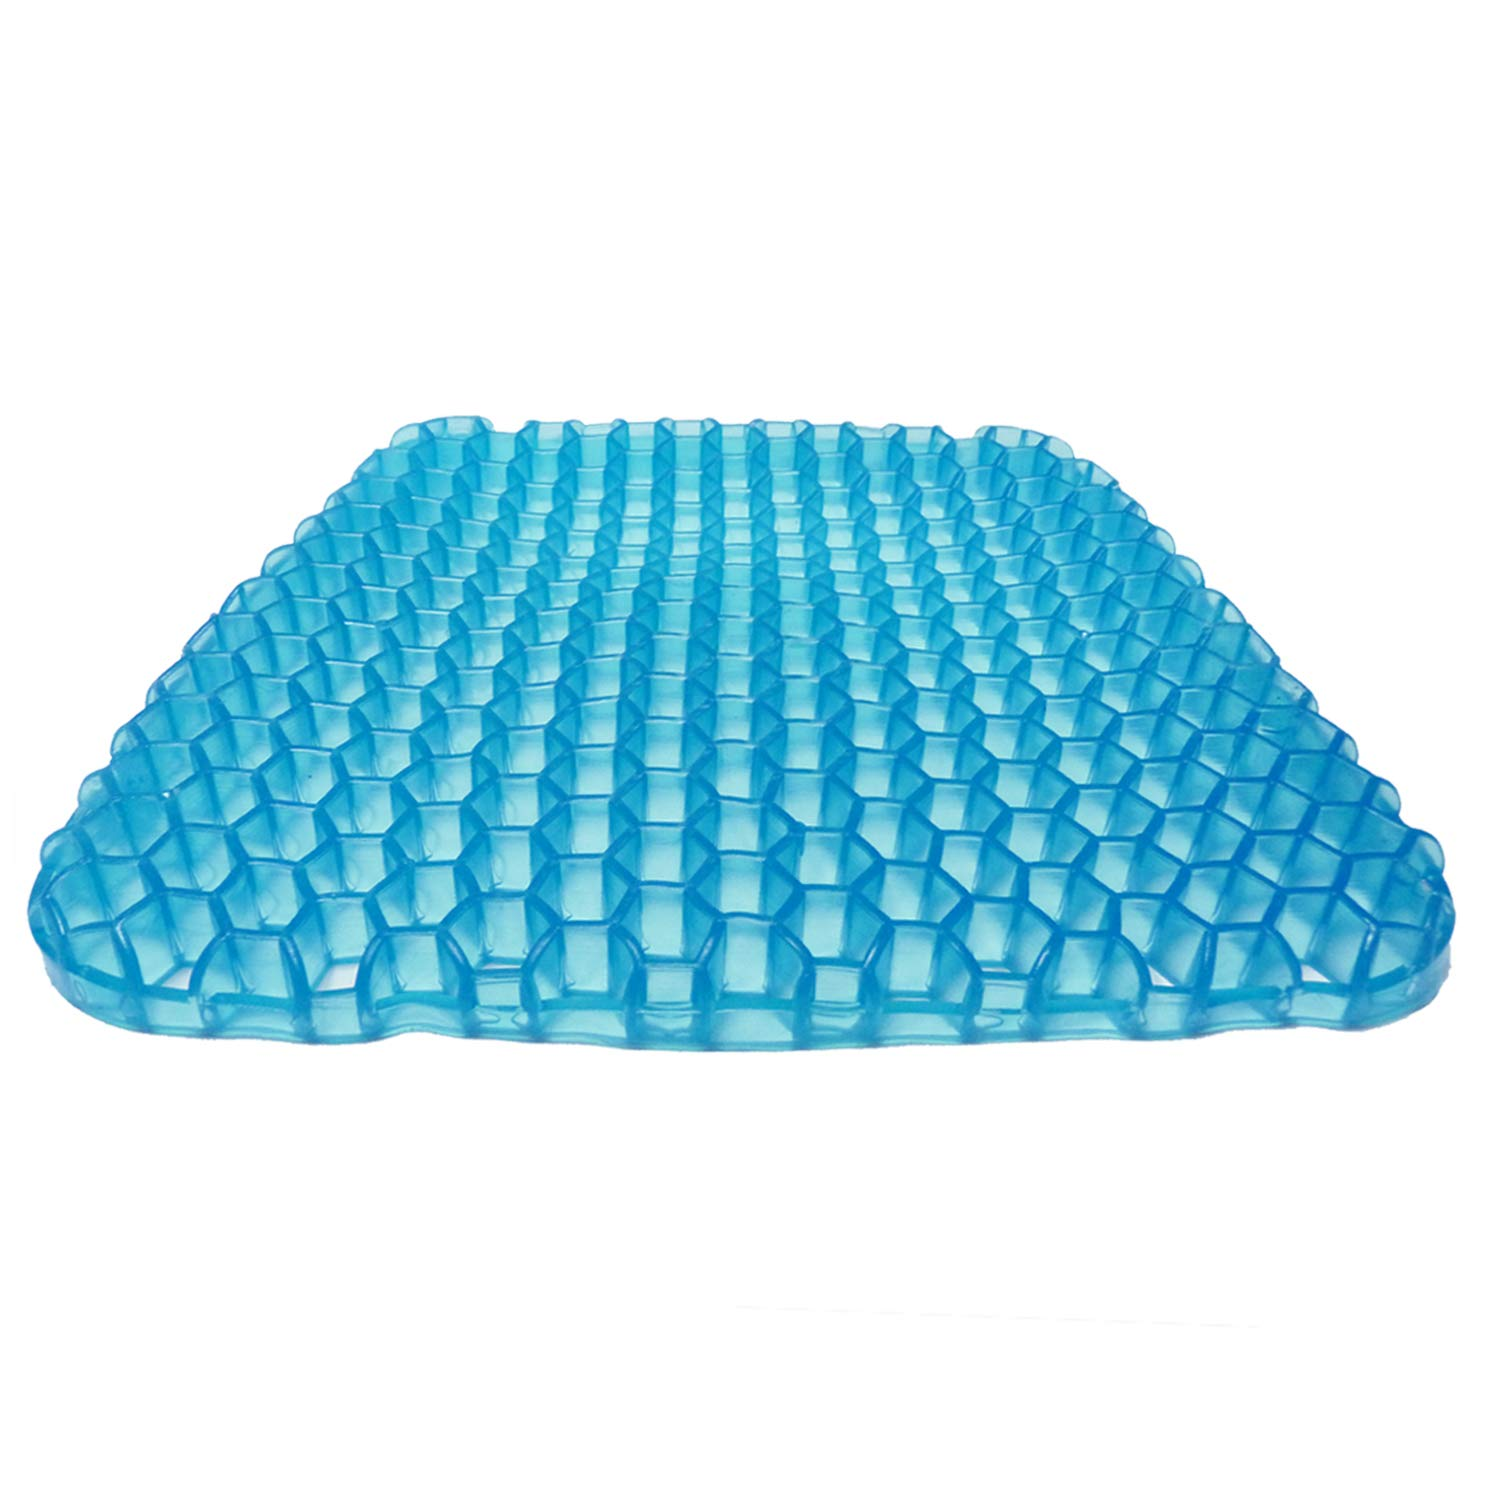 SESEAT Gel Seat Cushion Soft Breathable with Non Slip Cover for Chair Office Car Wheelchair Gel Cushion Seat Pad by SESEAT